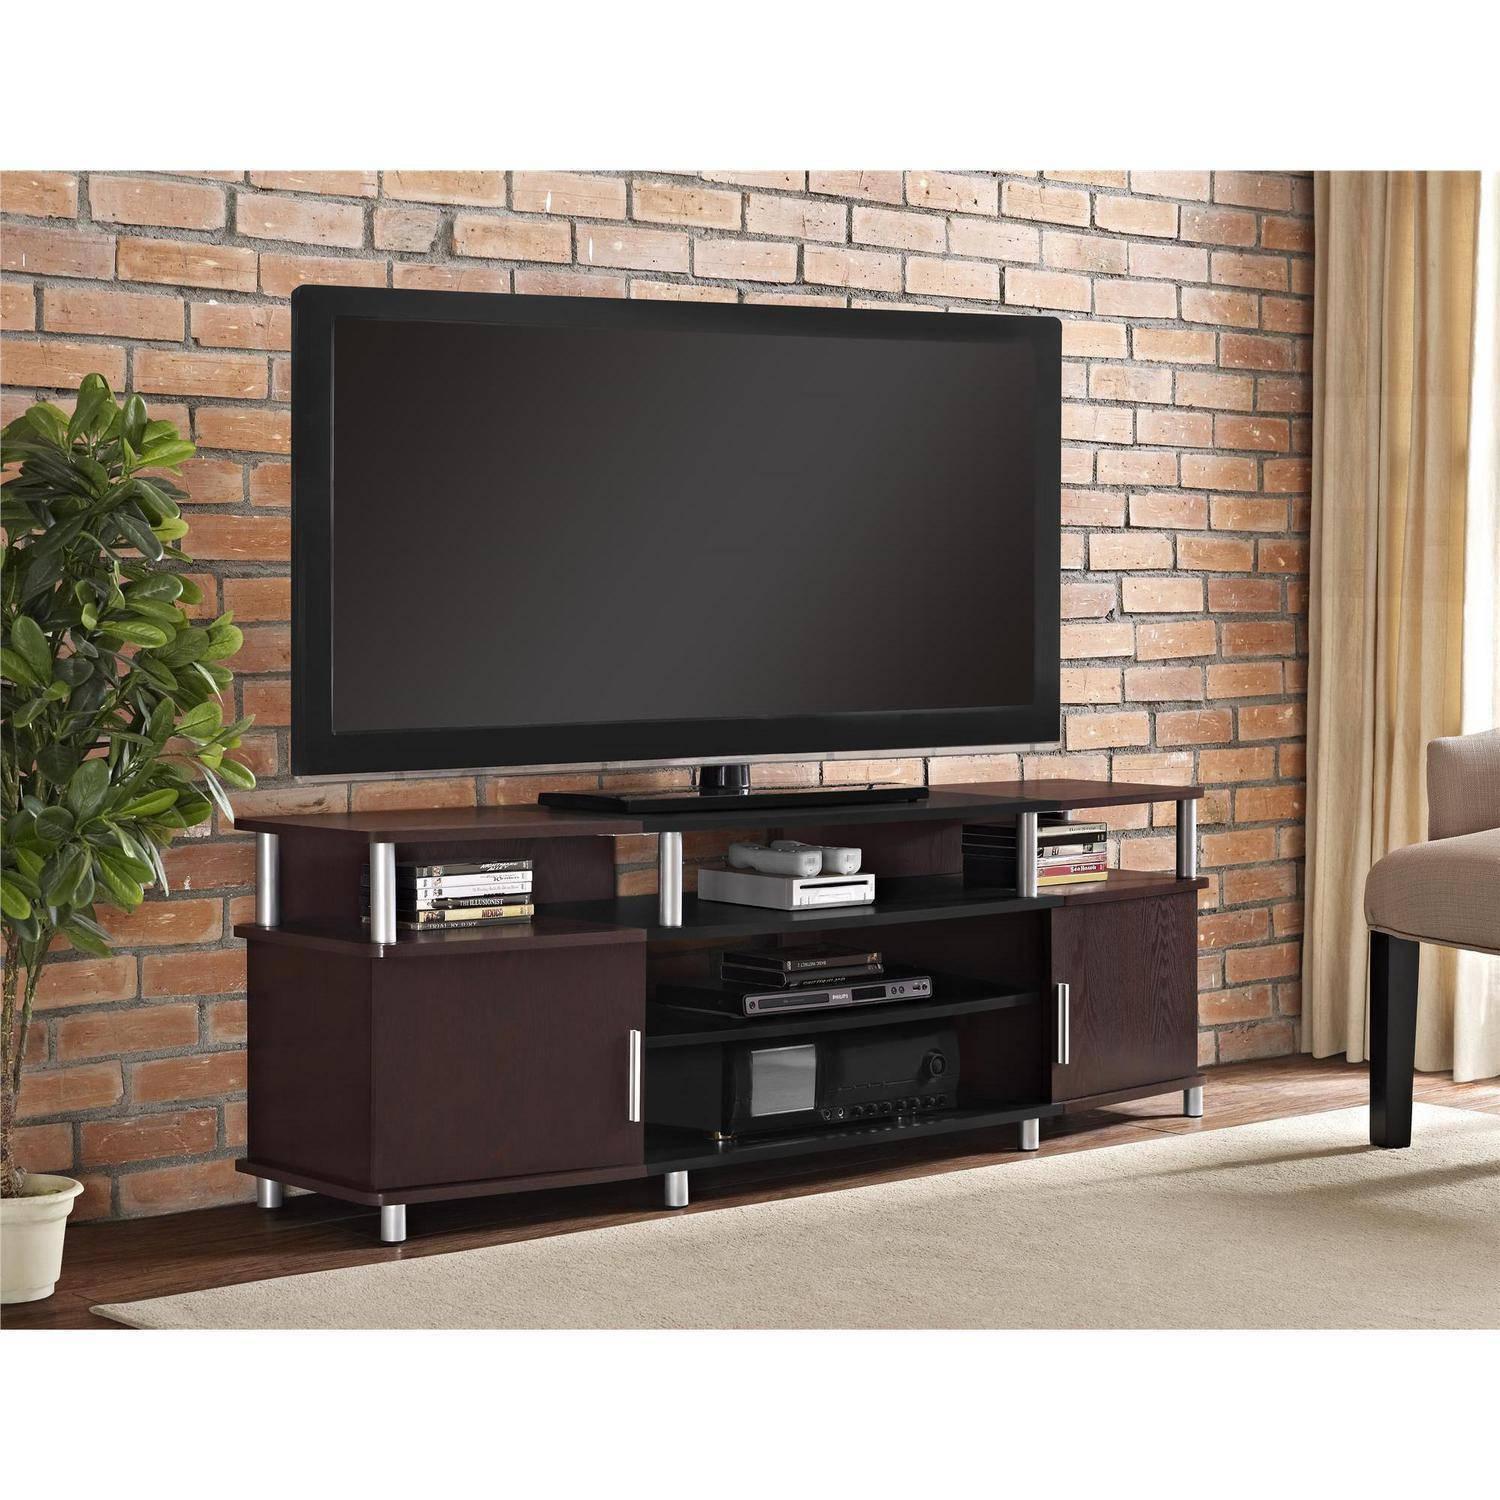 Cherry Entertainment Center Type : Great Ideas For Installing pertaining to Cherry Tv Armoire (Image 3 of 15)